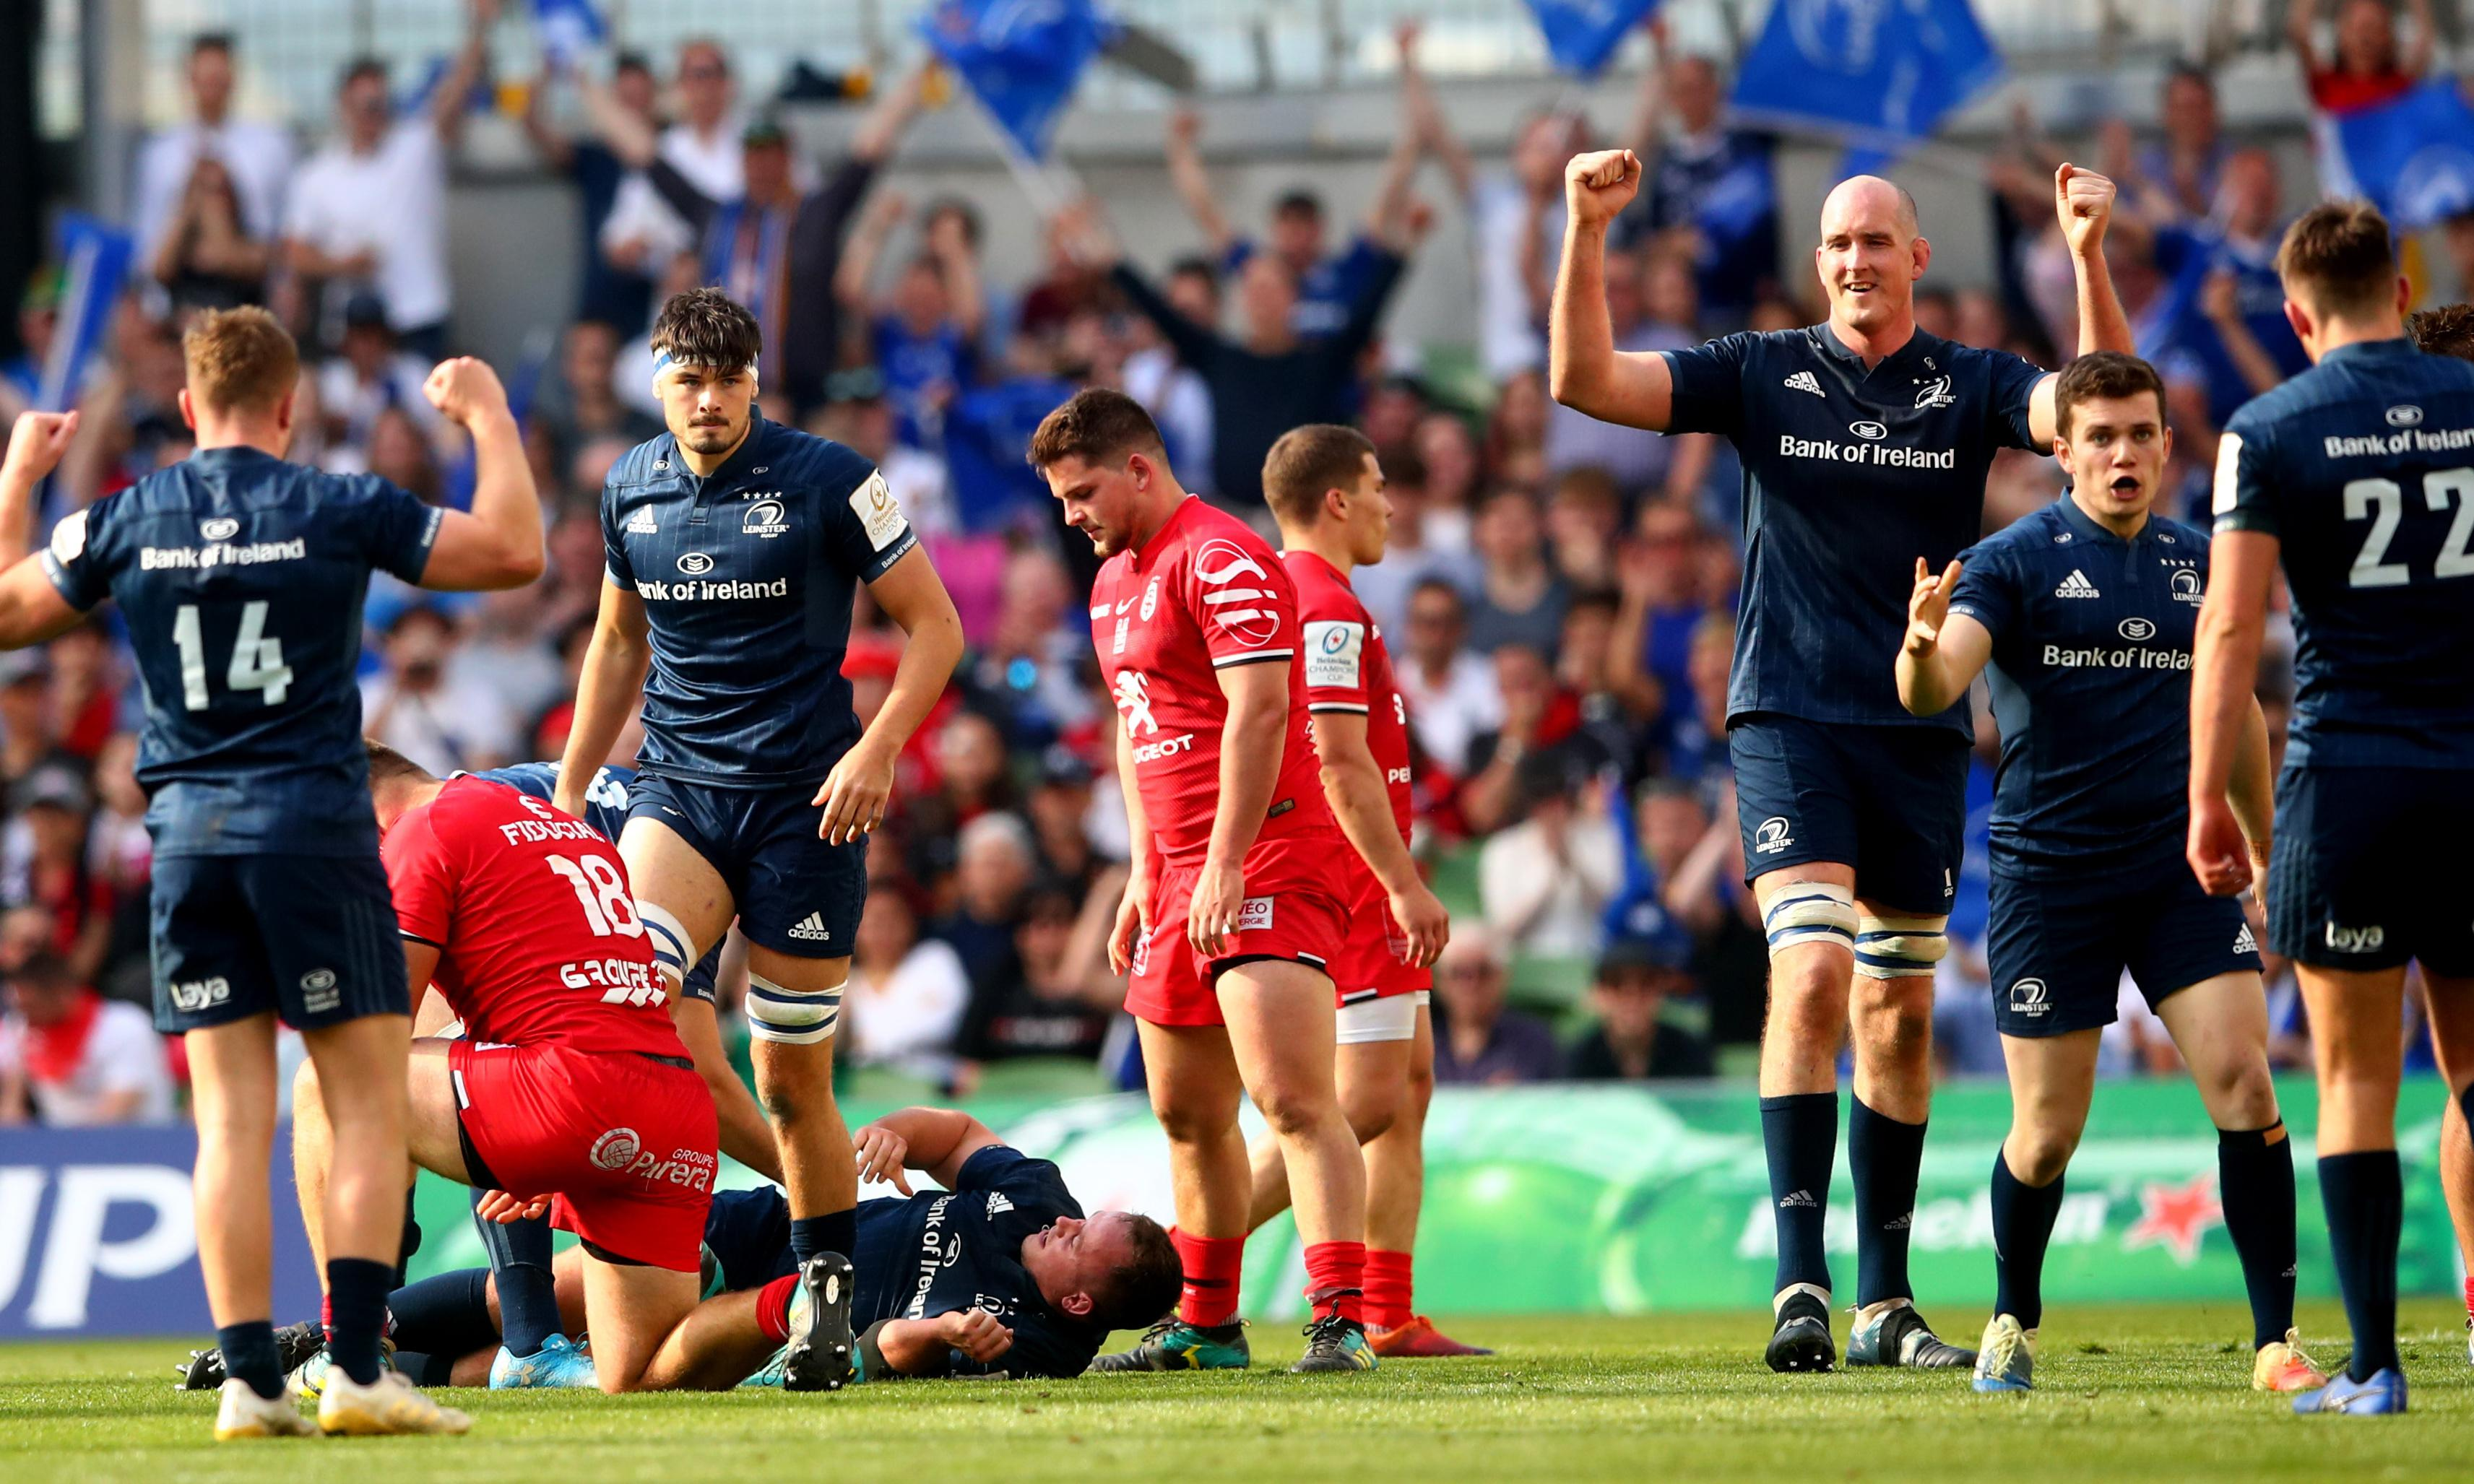 Leinster to face Saracens in Champions Cup final after suffocating Toulouse